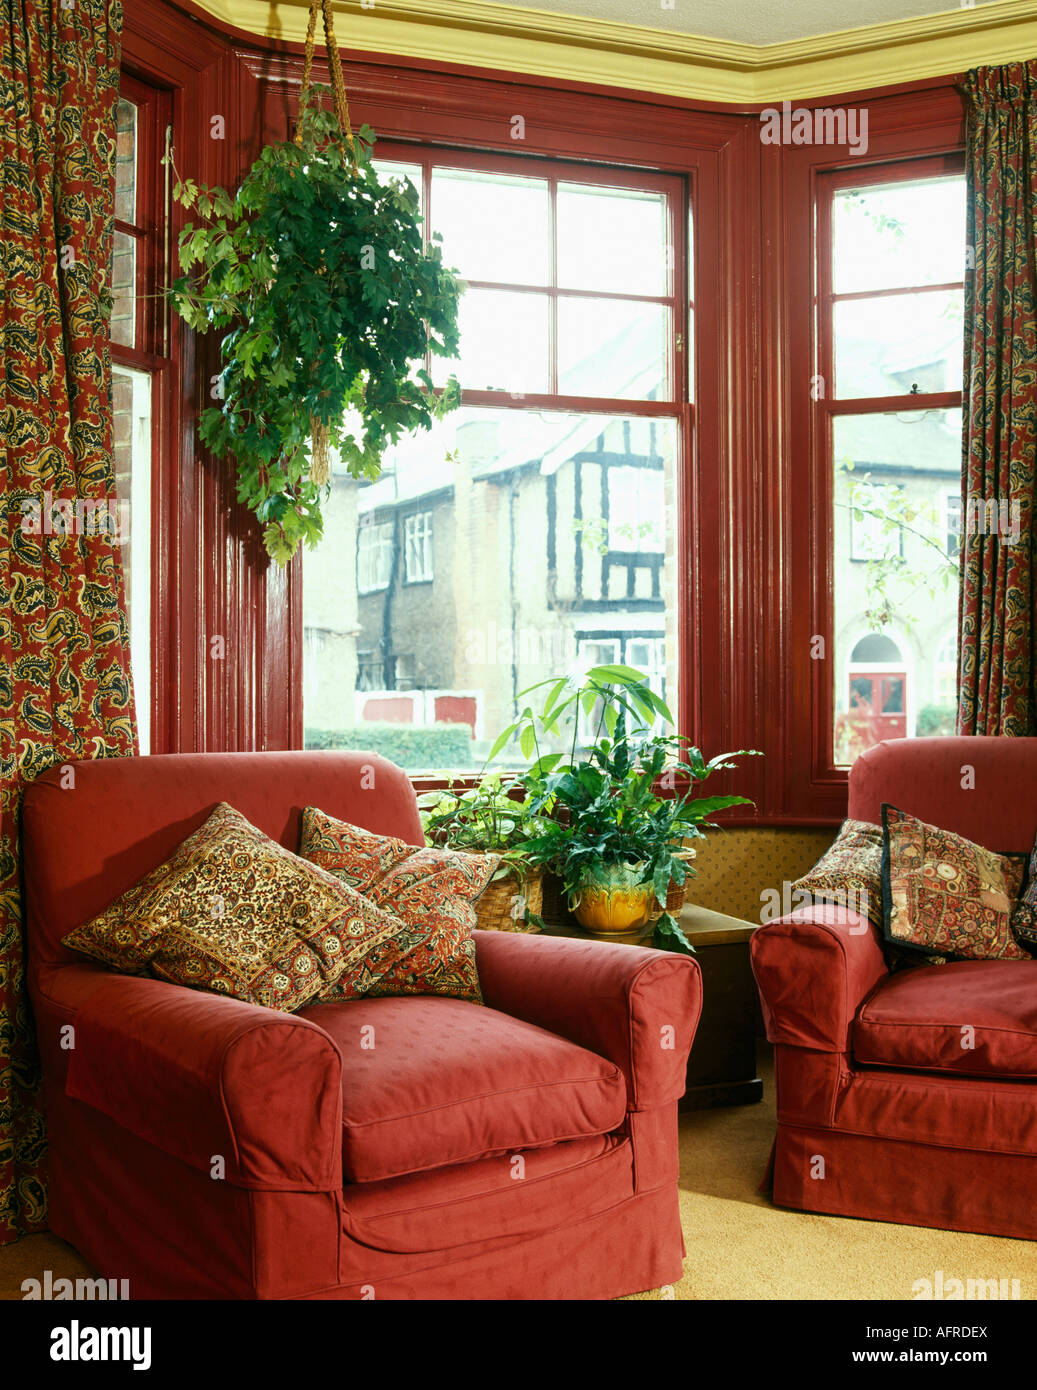 Comfortable Red Armchairs In Front Of Bay Window With Red Painted Frame In  Nineties Living Room With Green Hanging Plants